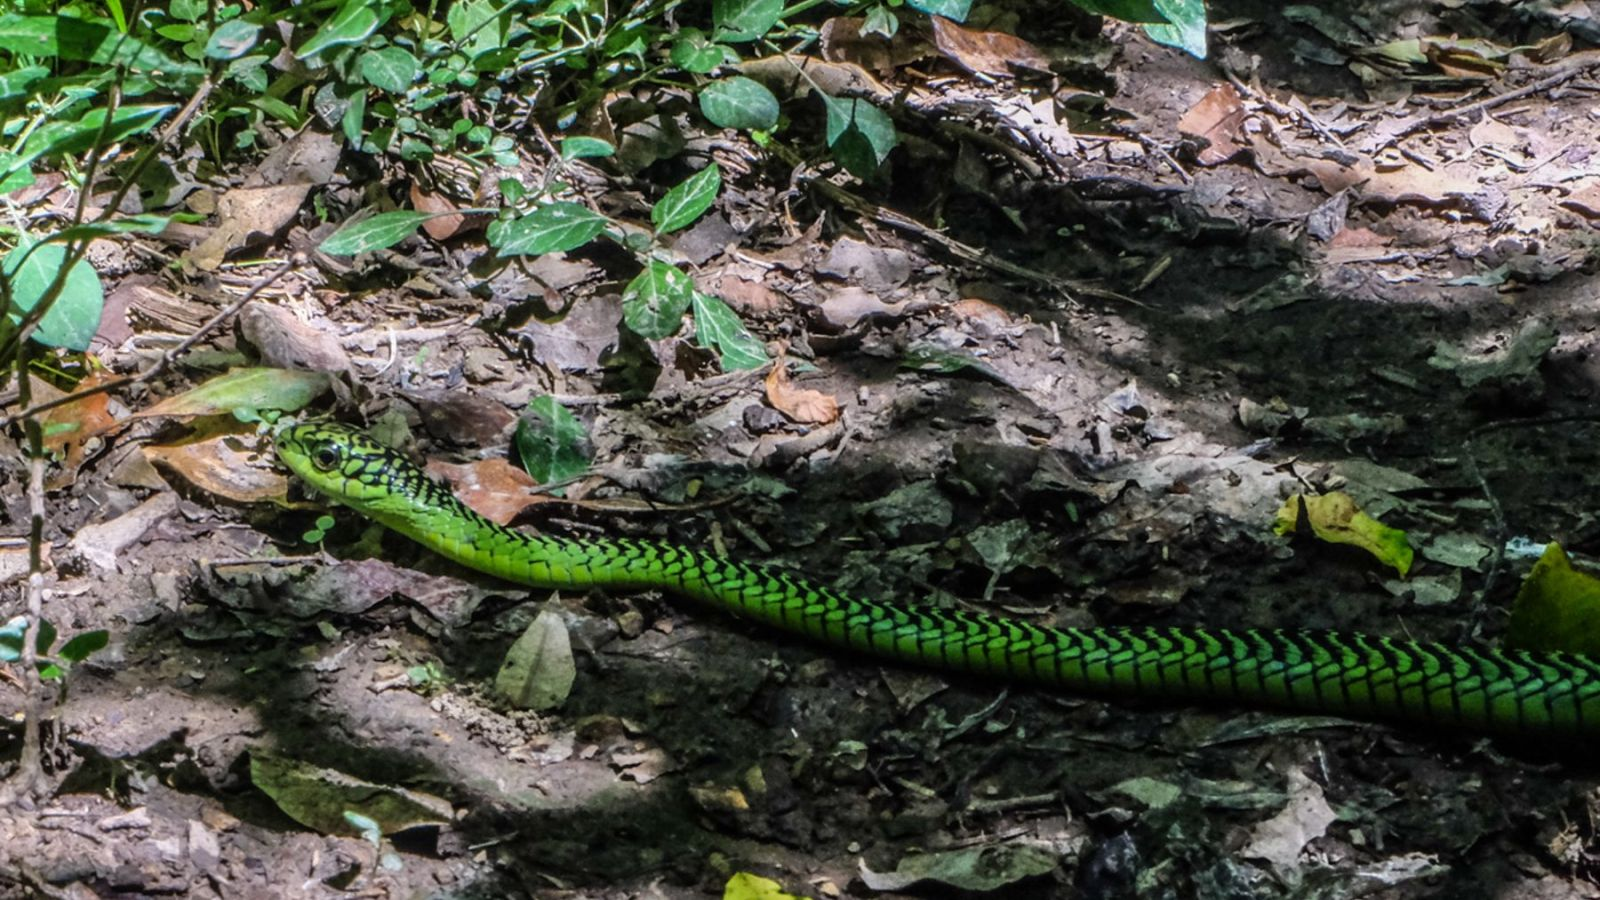 a photo of a green snake on the amathole trail in south africa.